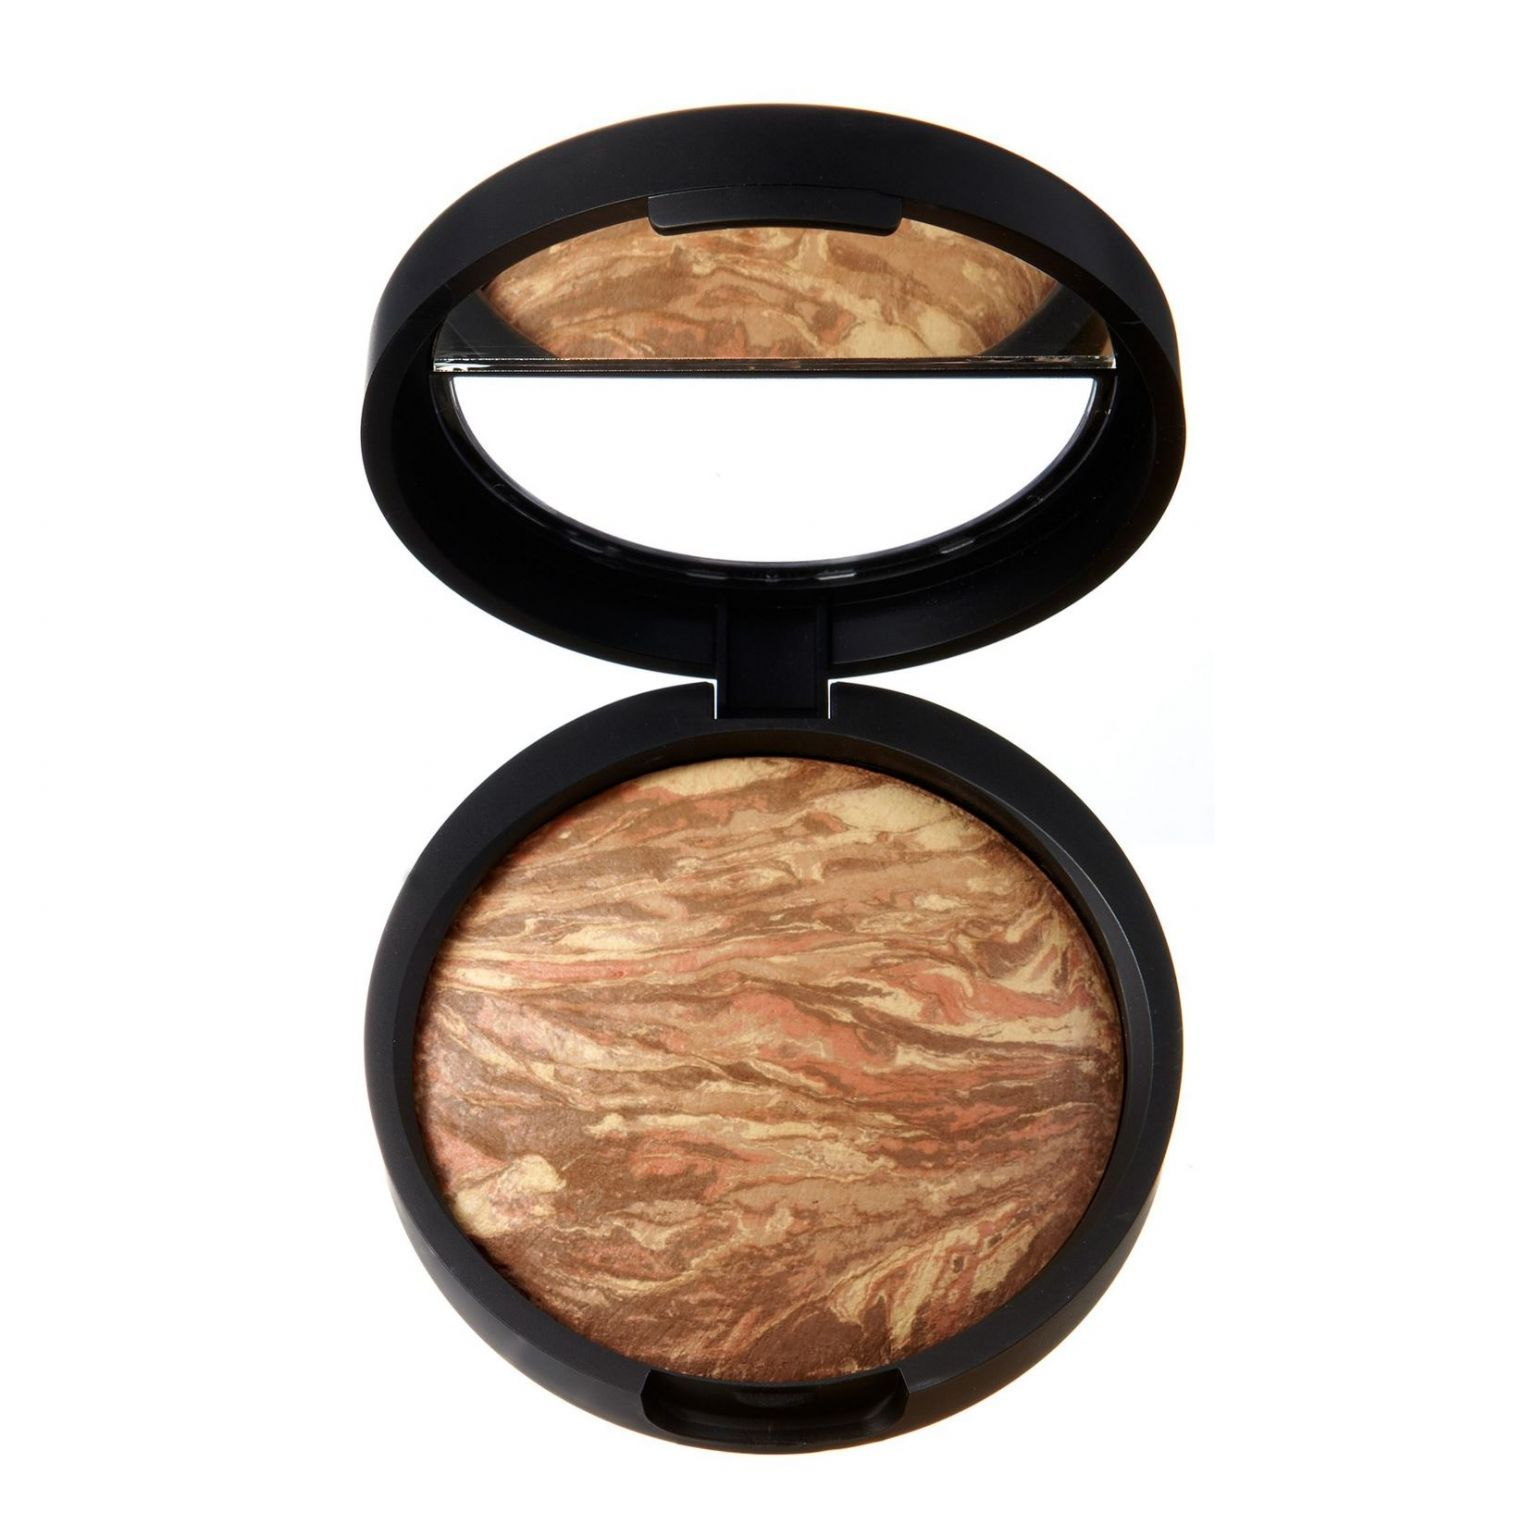 Balance-n-Brighten Baked Color Correcting Foundation